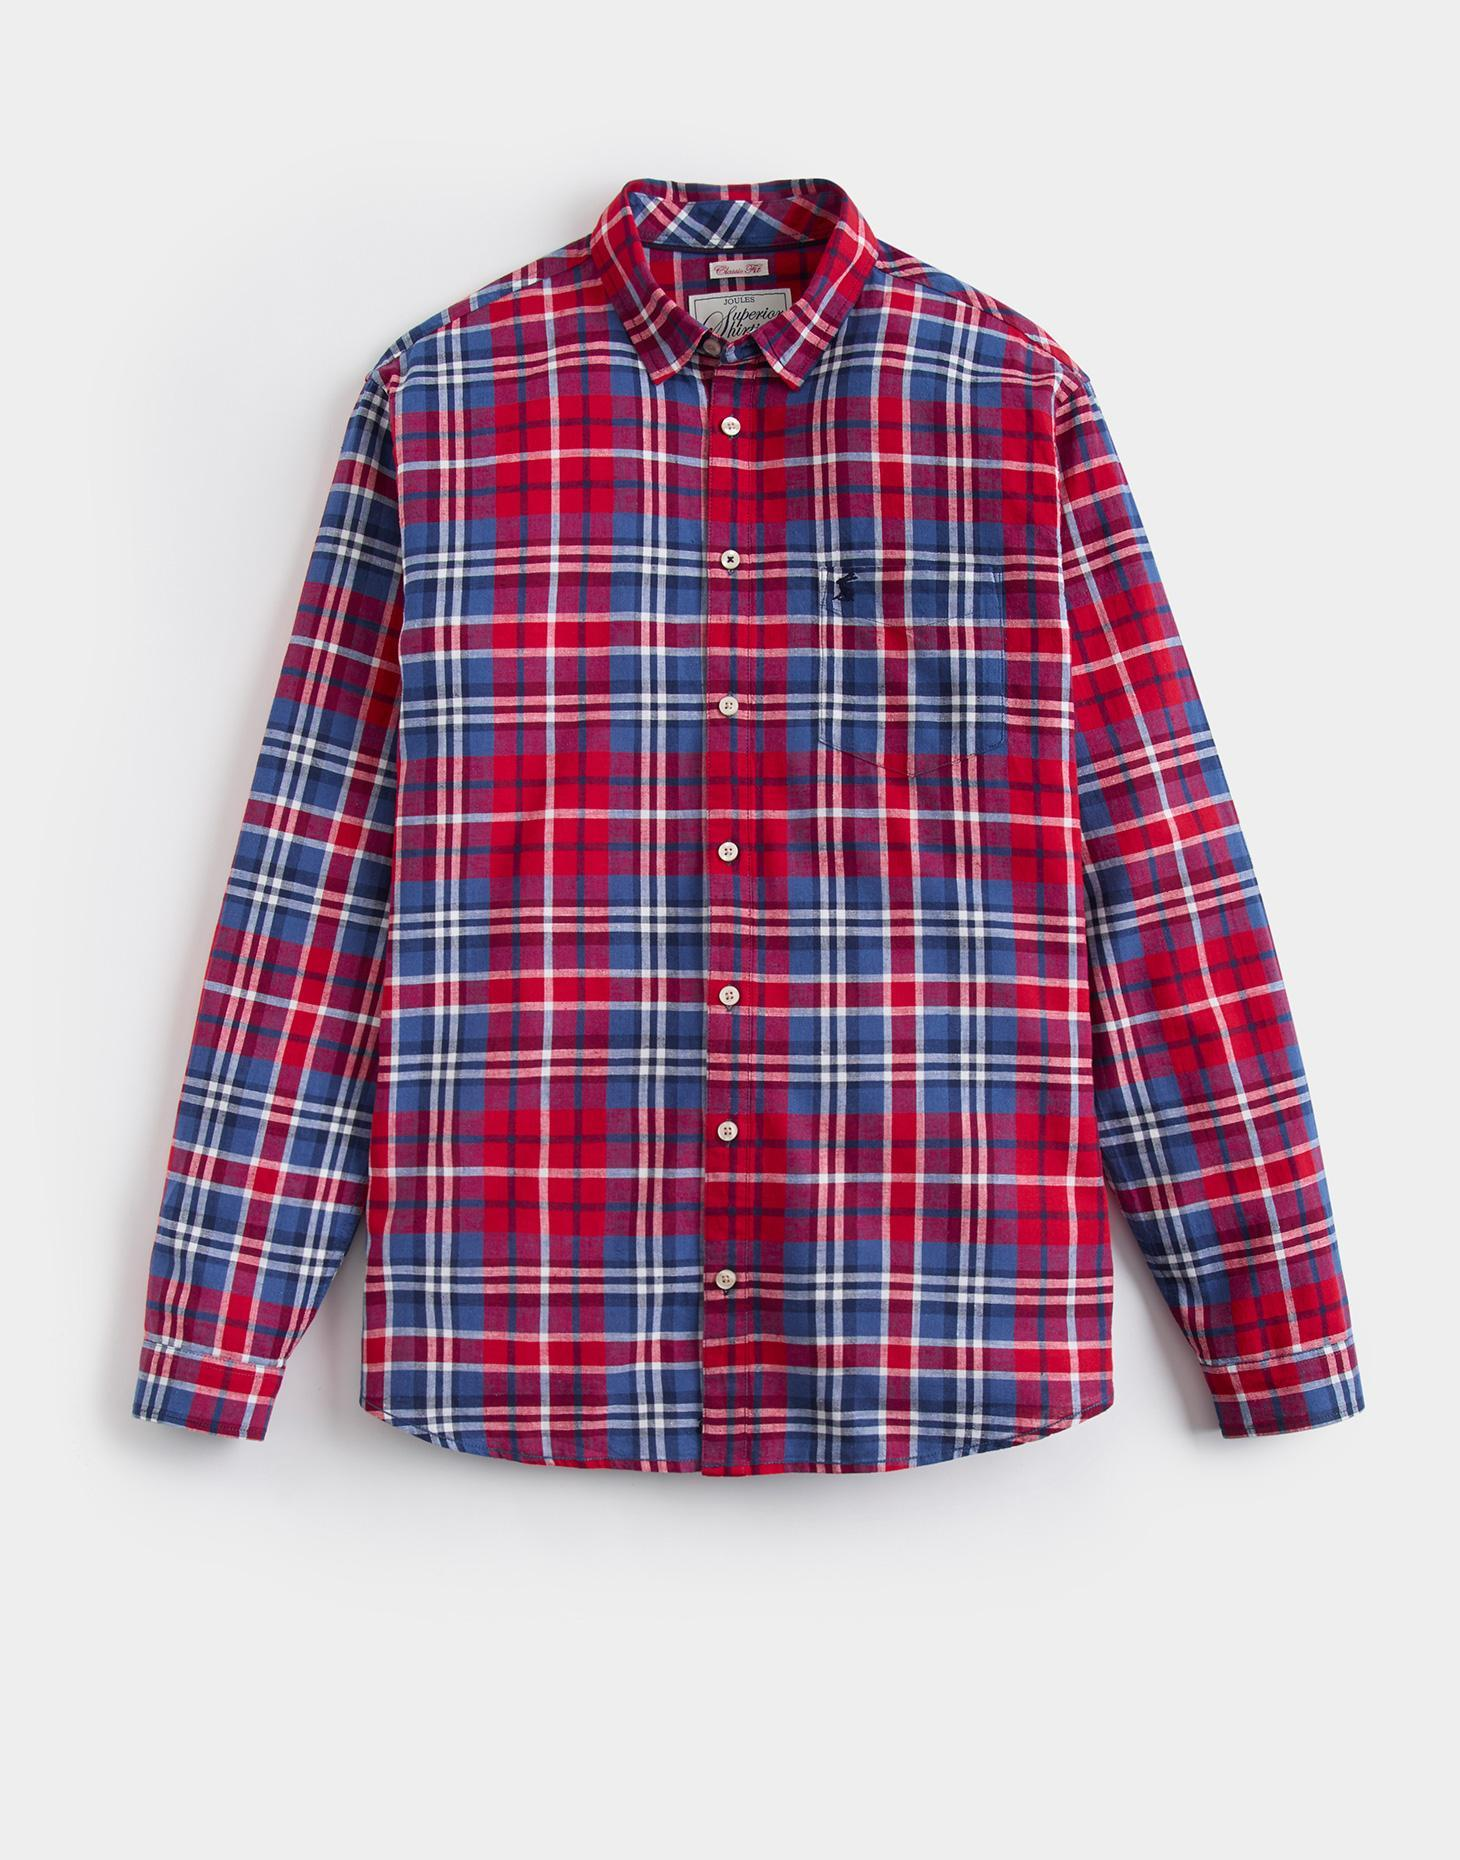 Joules Red Check LINEN Classic Fit Shirt